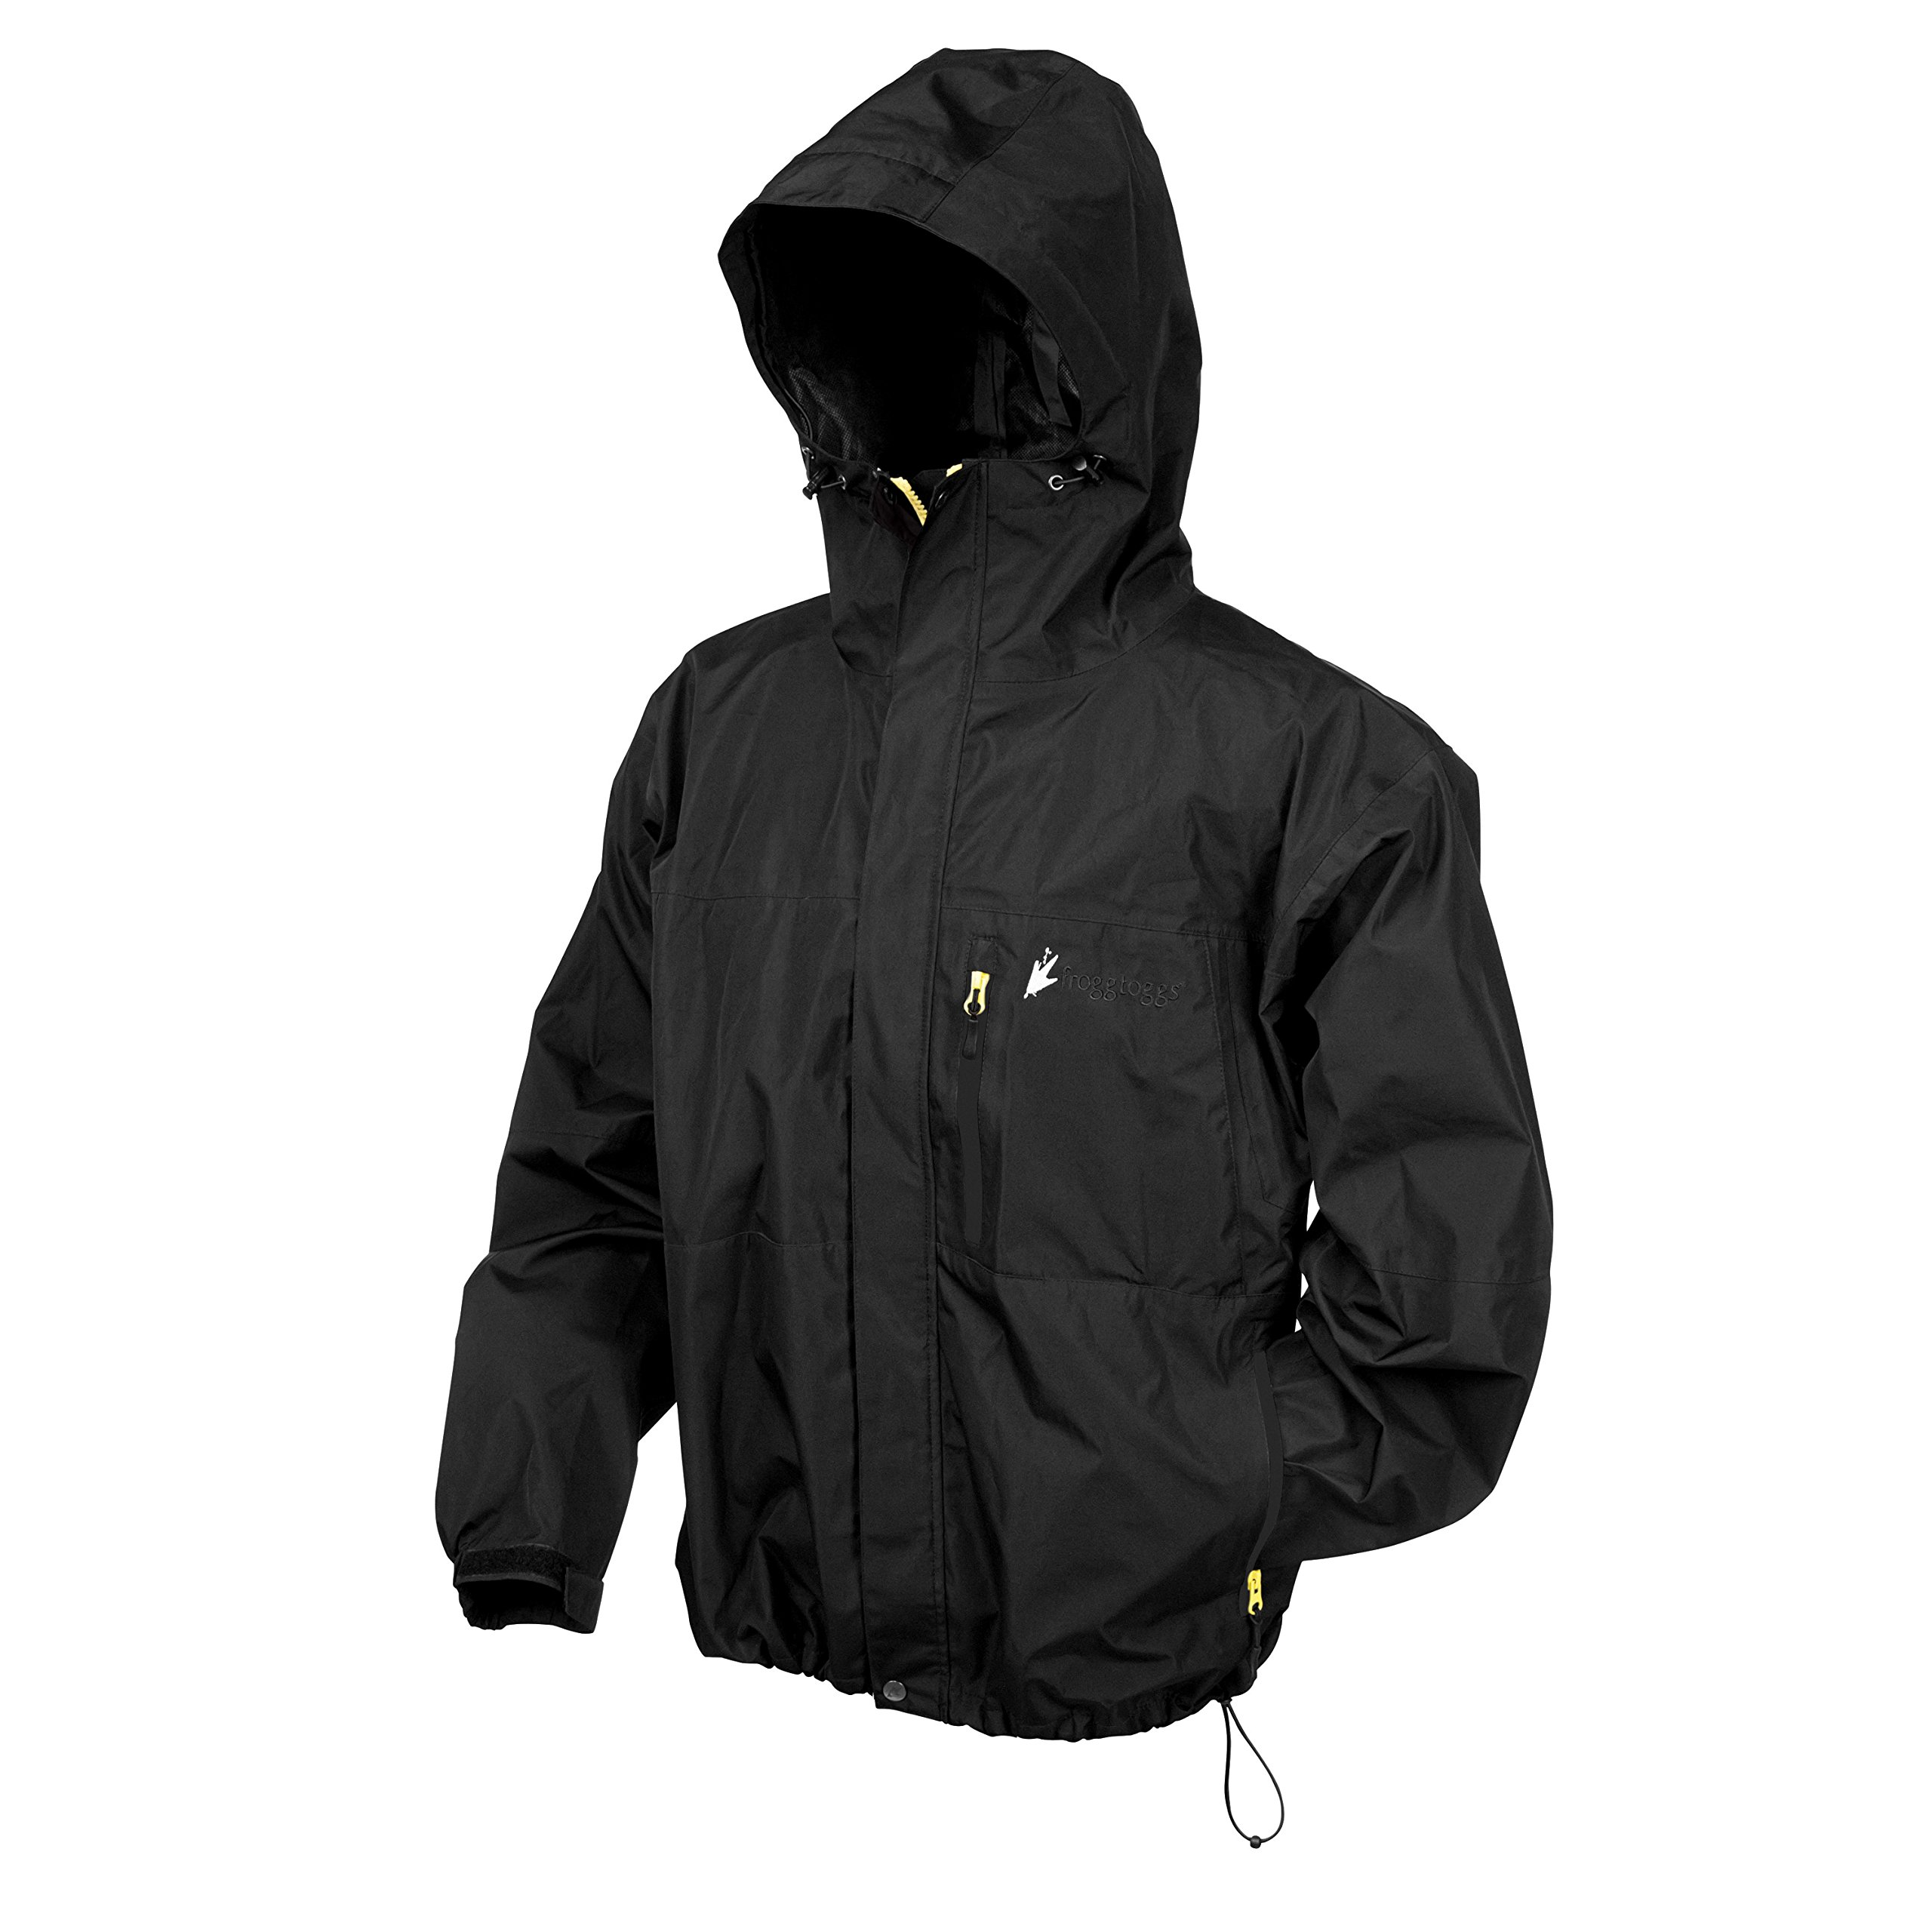 Frogg Toggs ToadRage II Jacket, Black, Size X-Large